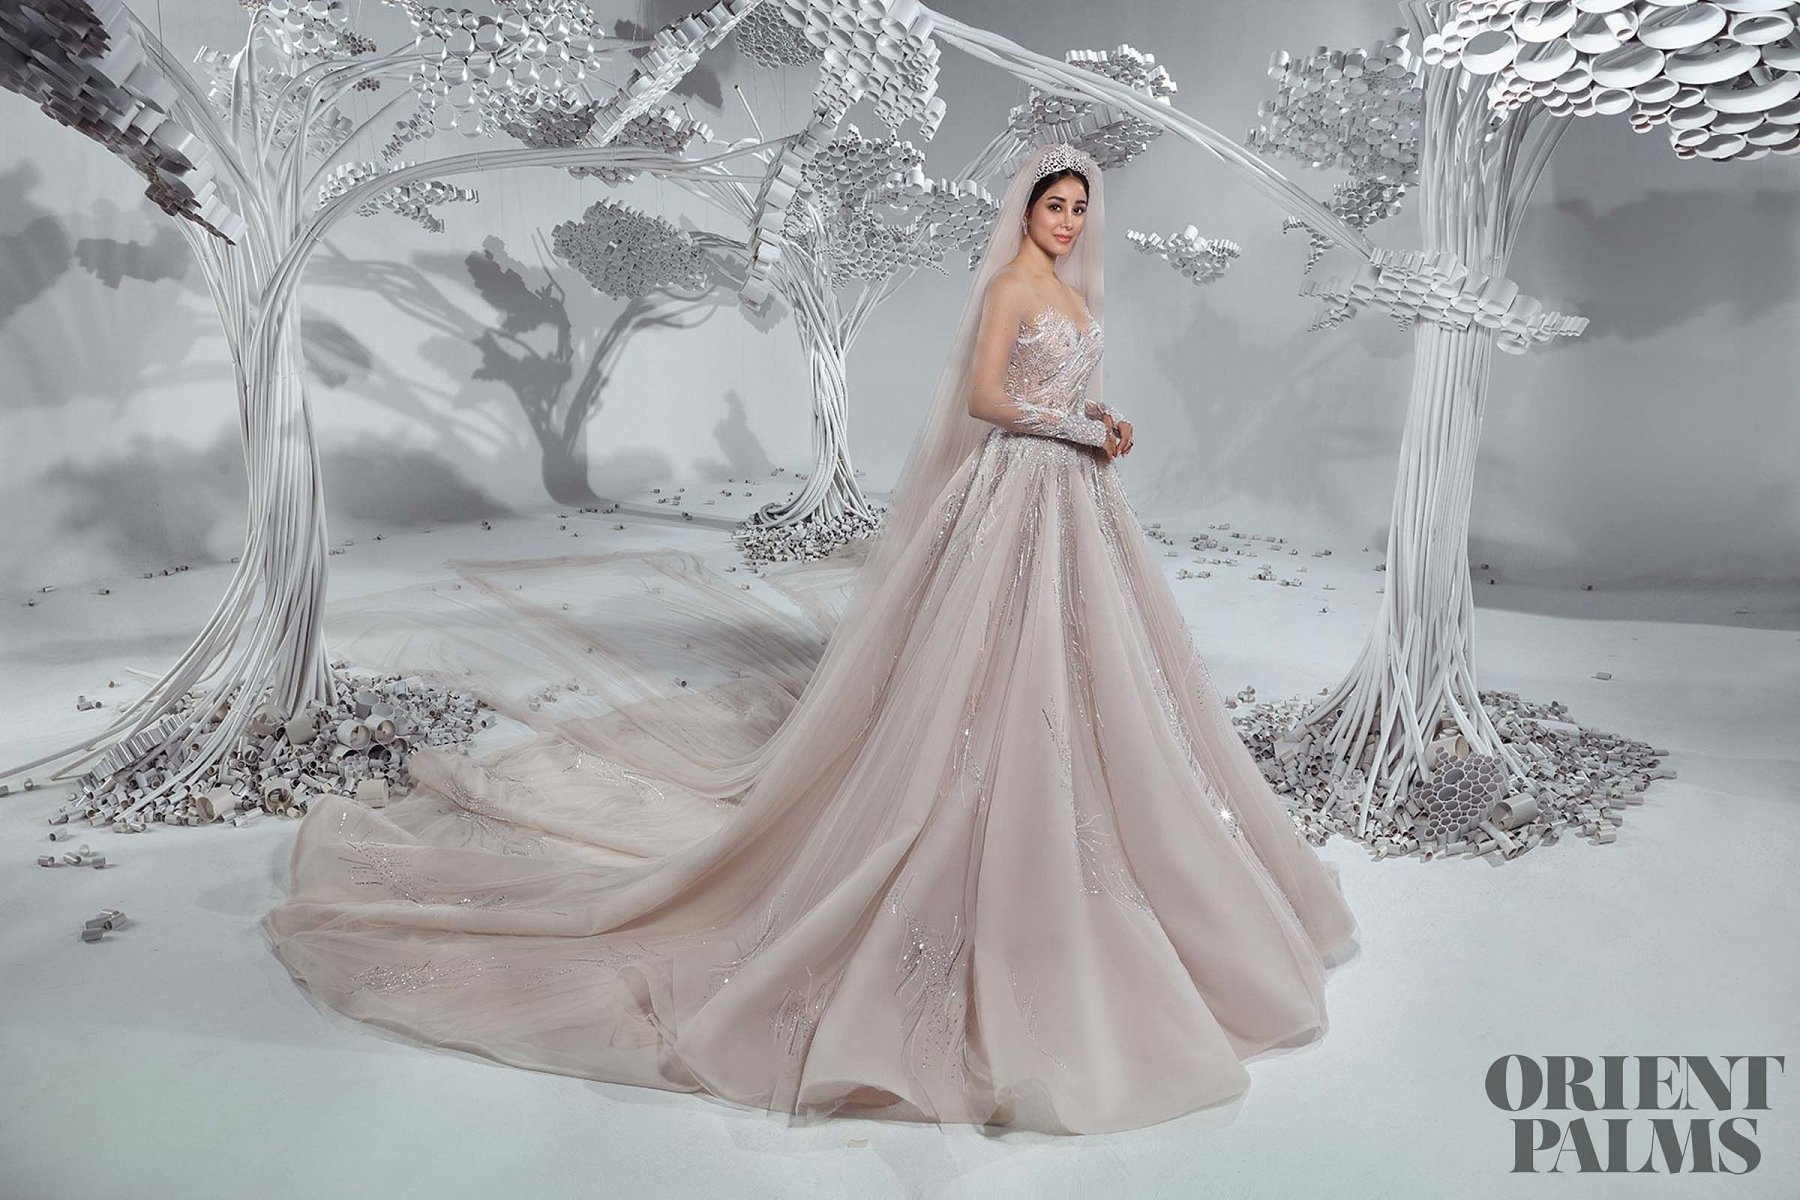 Charbel Karam 2020 collection - Couture - 21